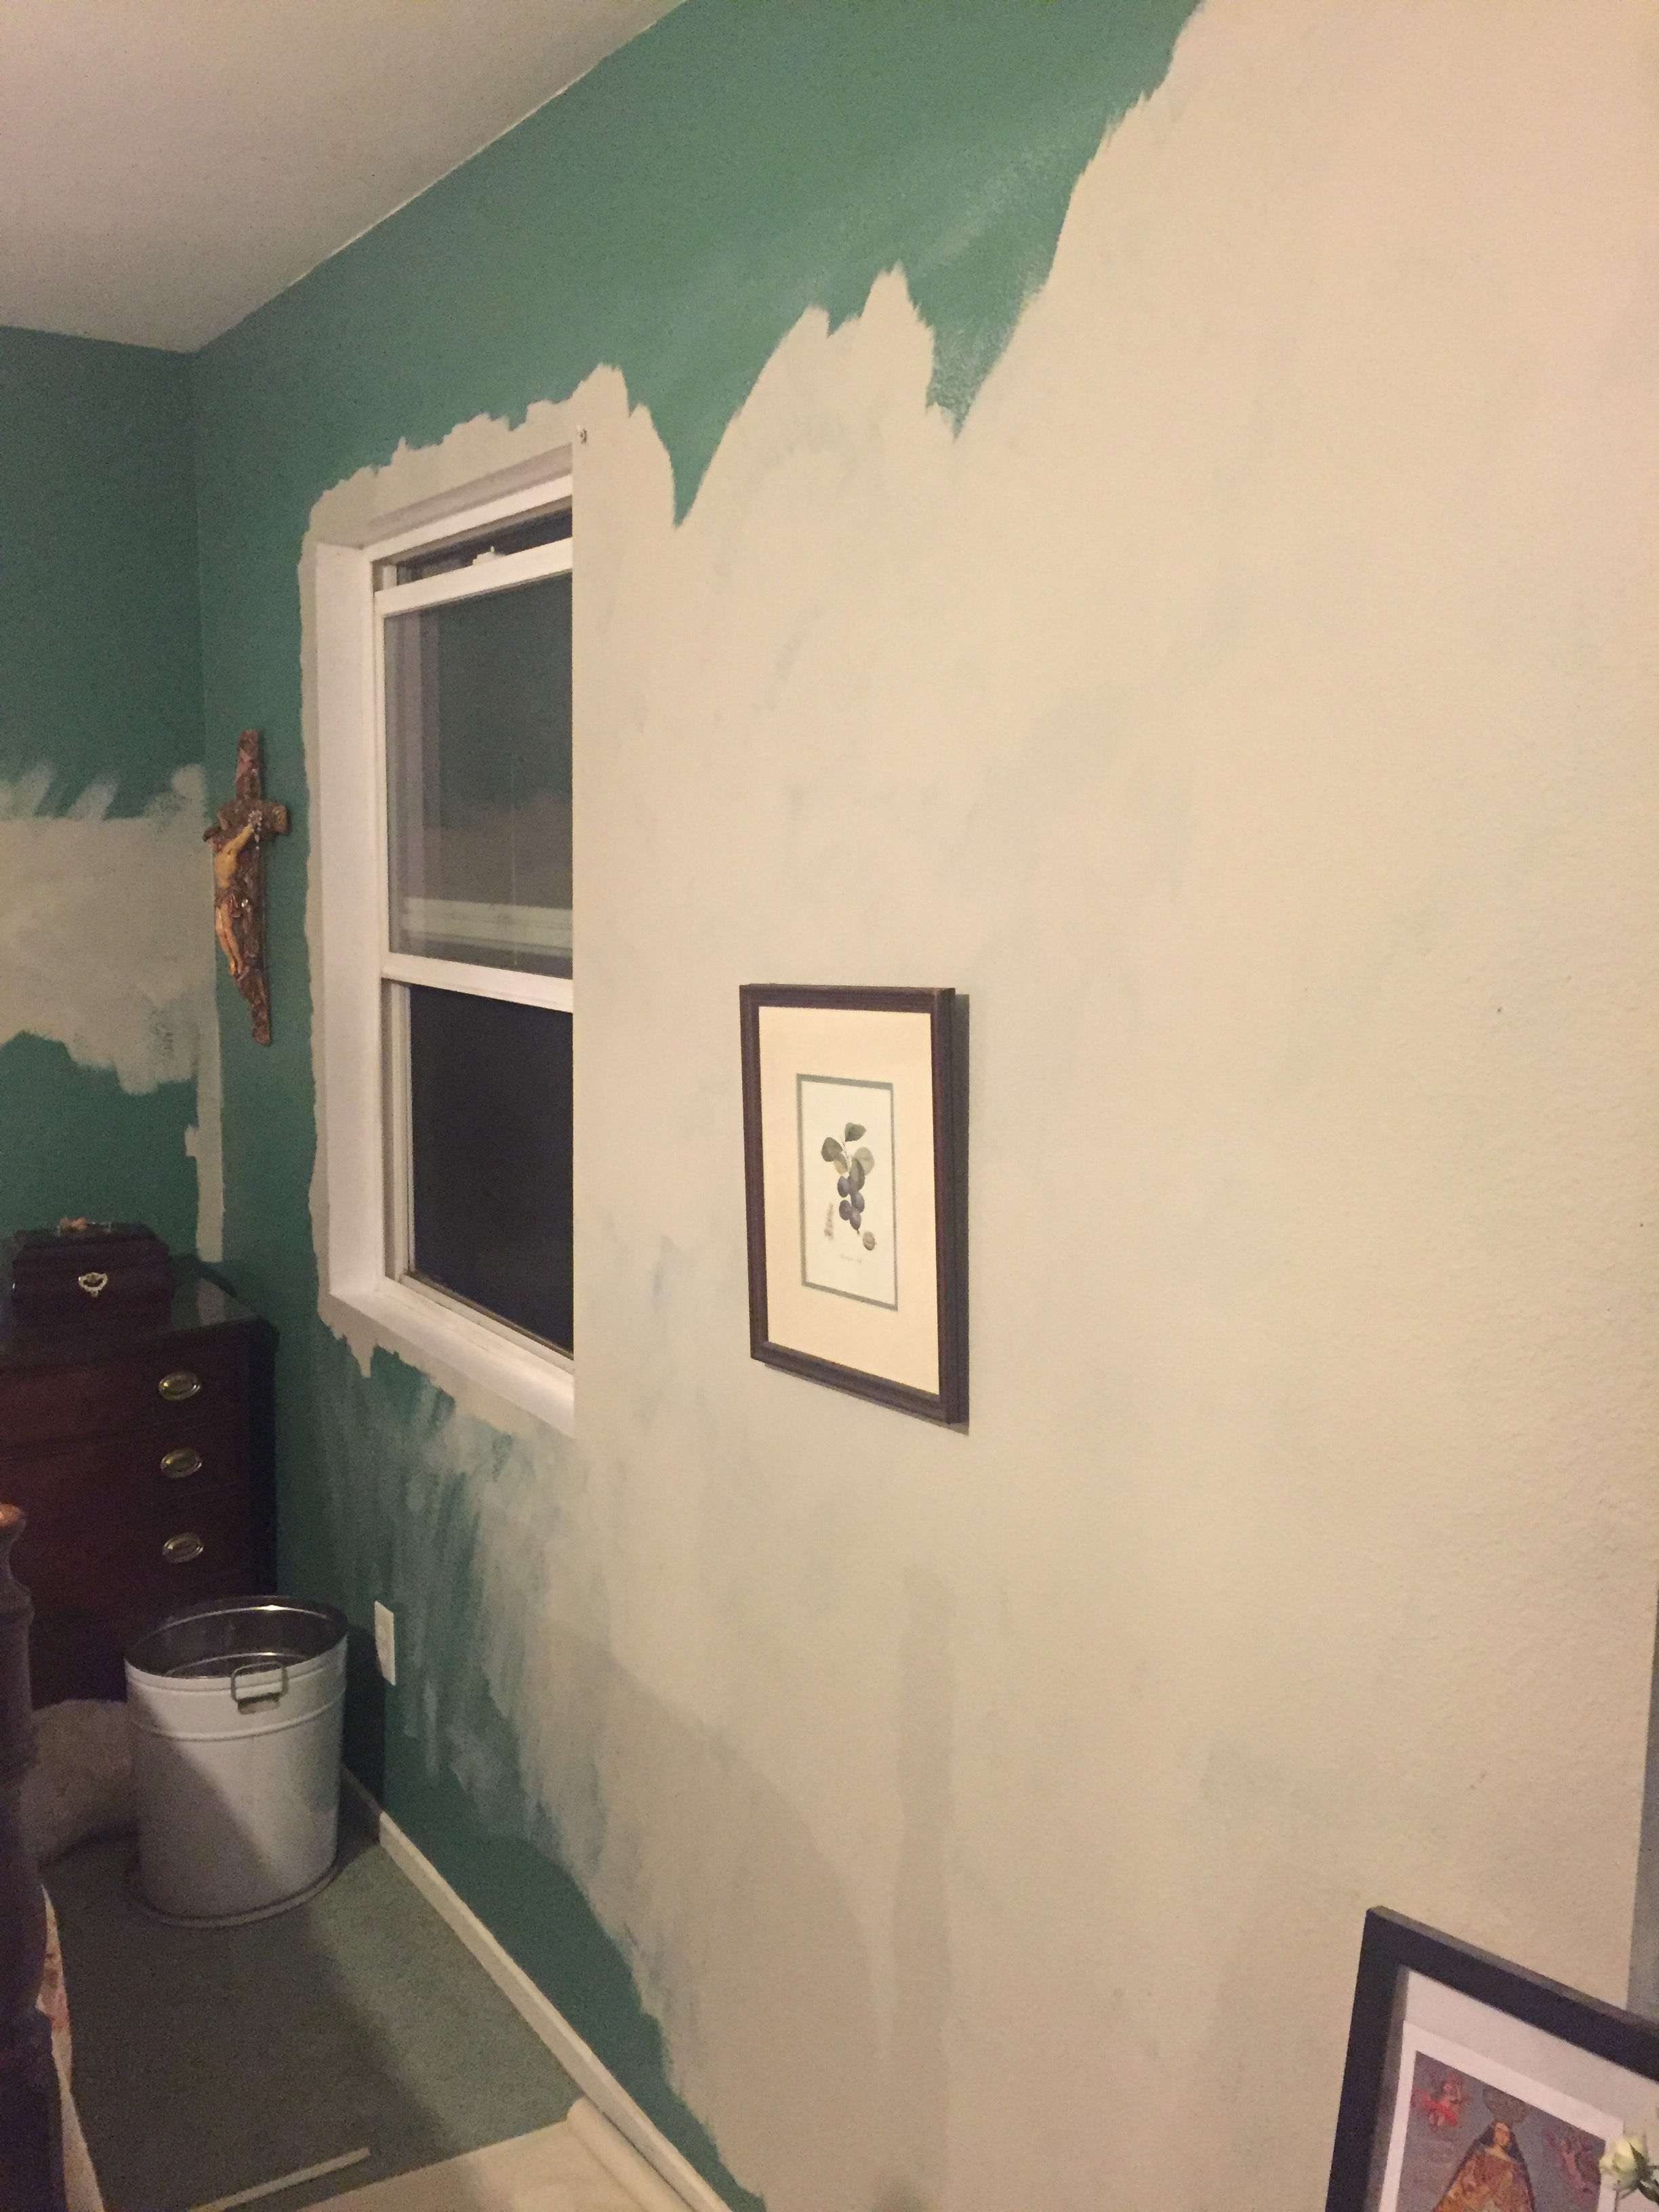 Hours later...still painting the same wall over and over again.